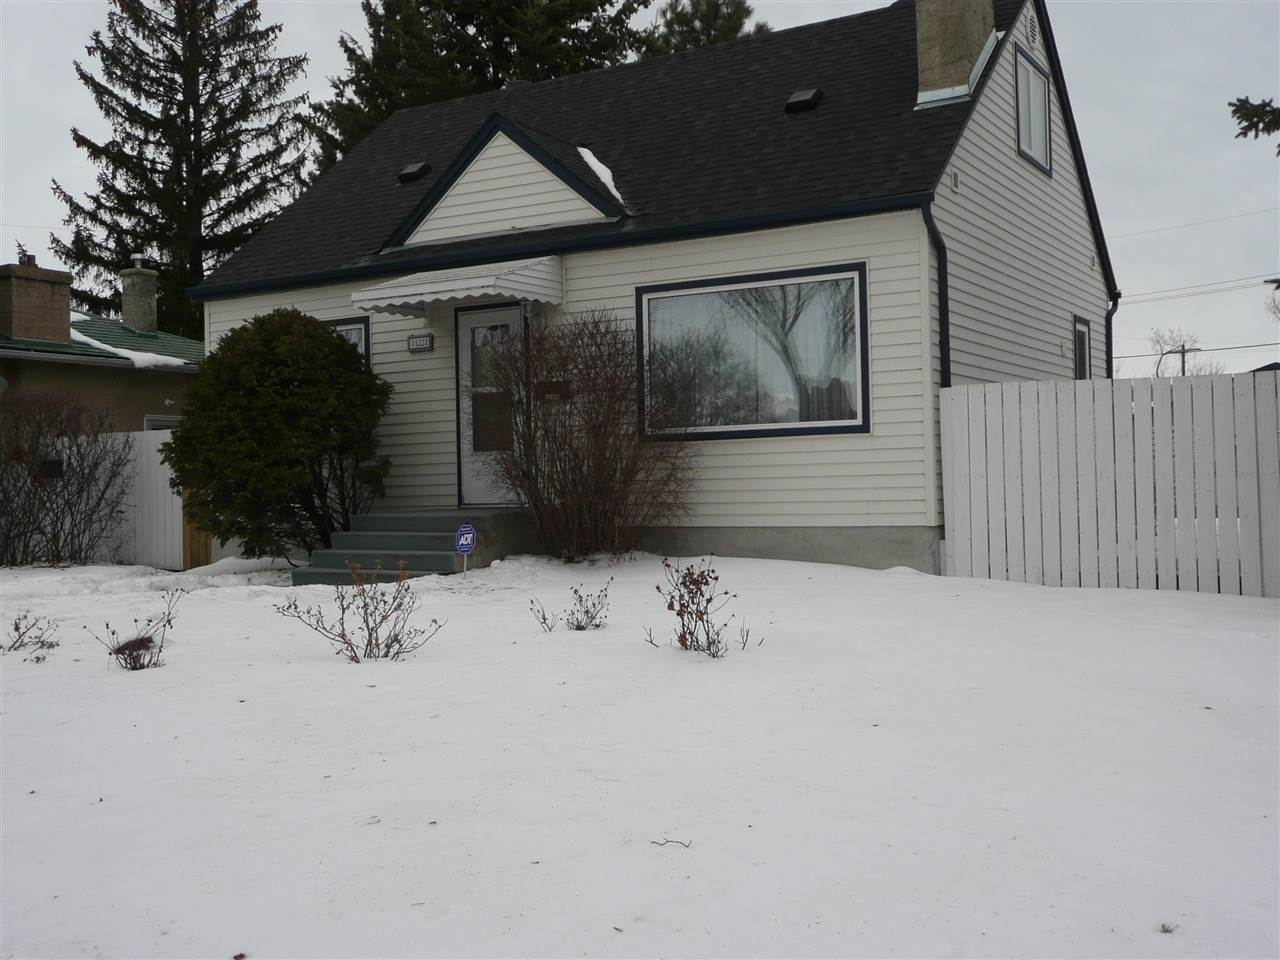 This renovated semi bungalow is on a 55x150 lot with oversized (24x26) dbl garage. Renovations with this owner include windows ,roof, bathrooms, insulation, siding, flooring, kitchen ,chimney ,retaining wall, plumbing, garage doors and gas lines, electrical, eaves and and hot water tank. Move in ready. What it lacks in size it makes up for it in quality. Open dining and family room with gas fire place. Updated alarm system. Large deck with gas line for BBQ.  Main floor has a den and 3 pce bath. There is a large 4 pce bath in basement wit heated floors. Kitchen has ceramic floors that are heated as well. Large family room in basement and a storage area in utility room. The HTW and water meter have been upgraded in 2016. Huge lot could be subdivided. Lots of newer infill homes in the area. Close to all amenities and Highland Golf course and Eastglen pool.